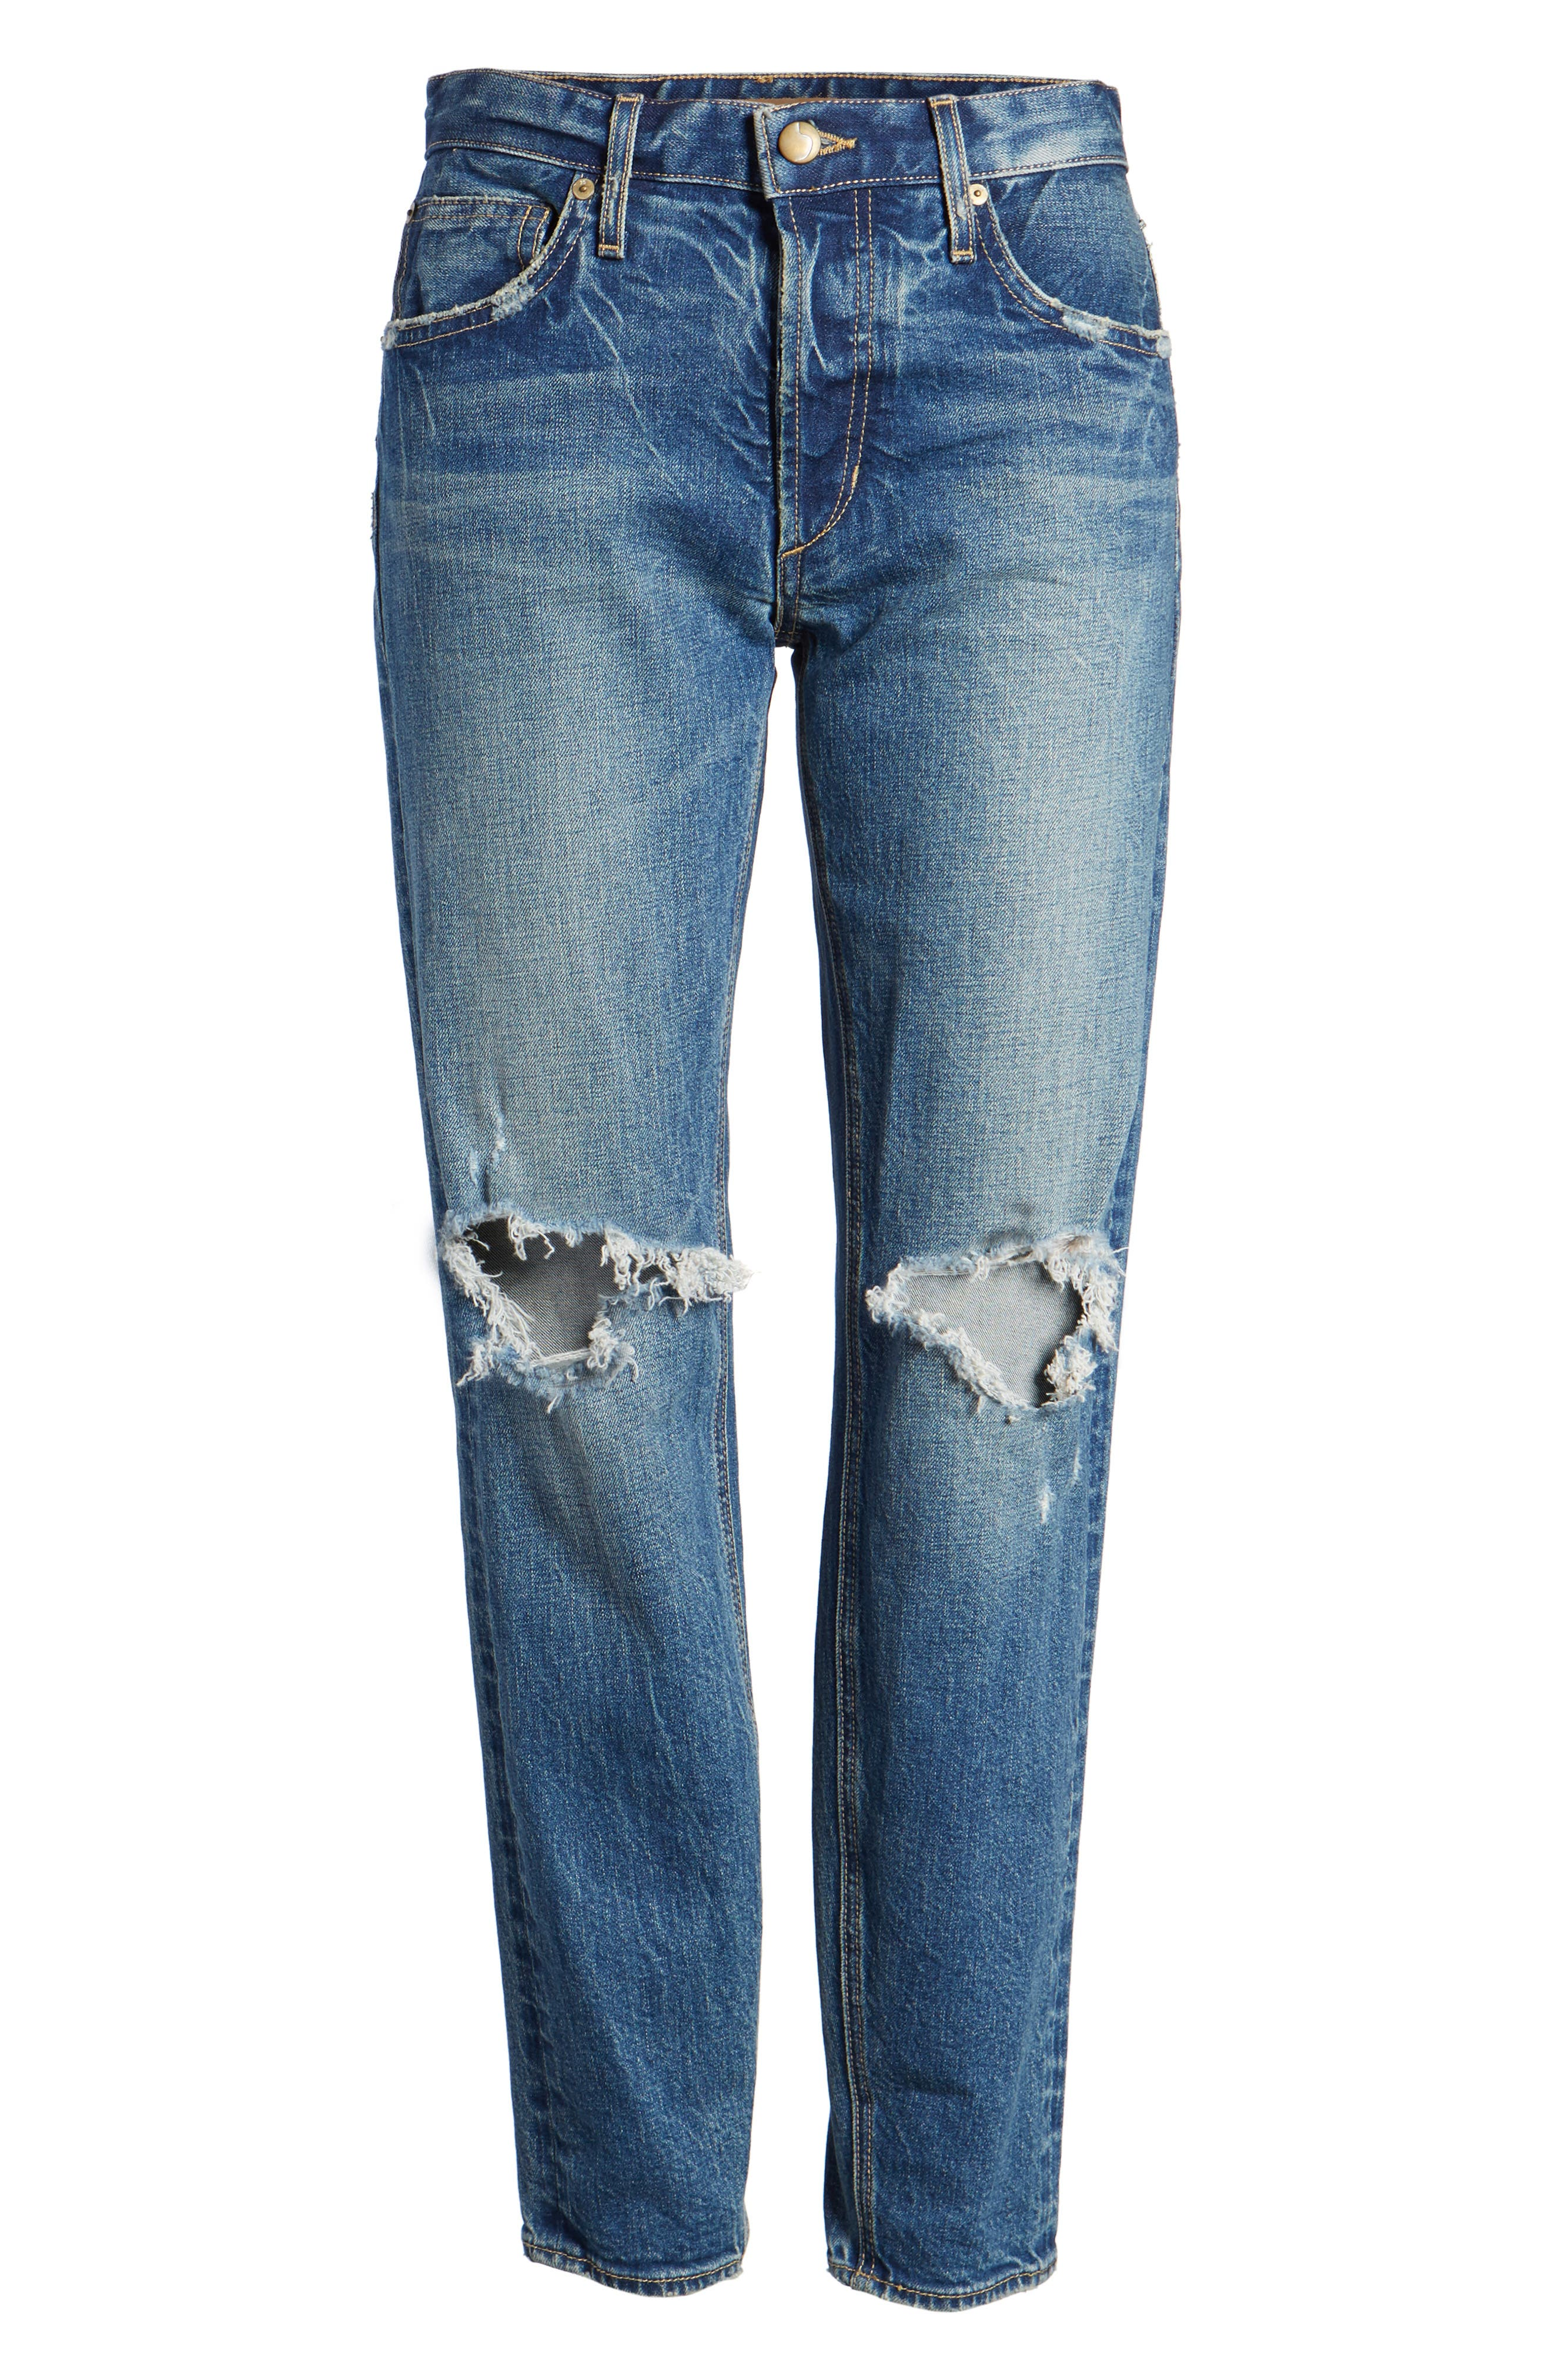 Vintage Icon Ankle Skinny Jeans,                             Alternate thumbnail 7, color,                             415